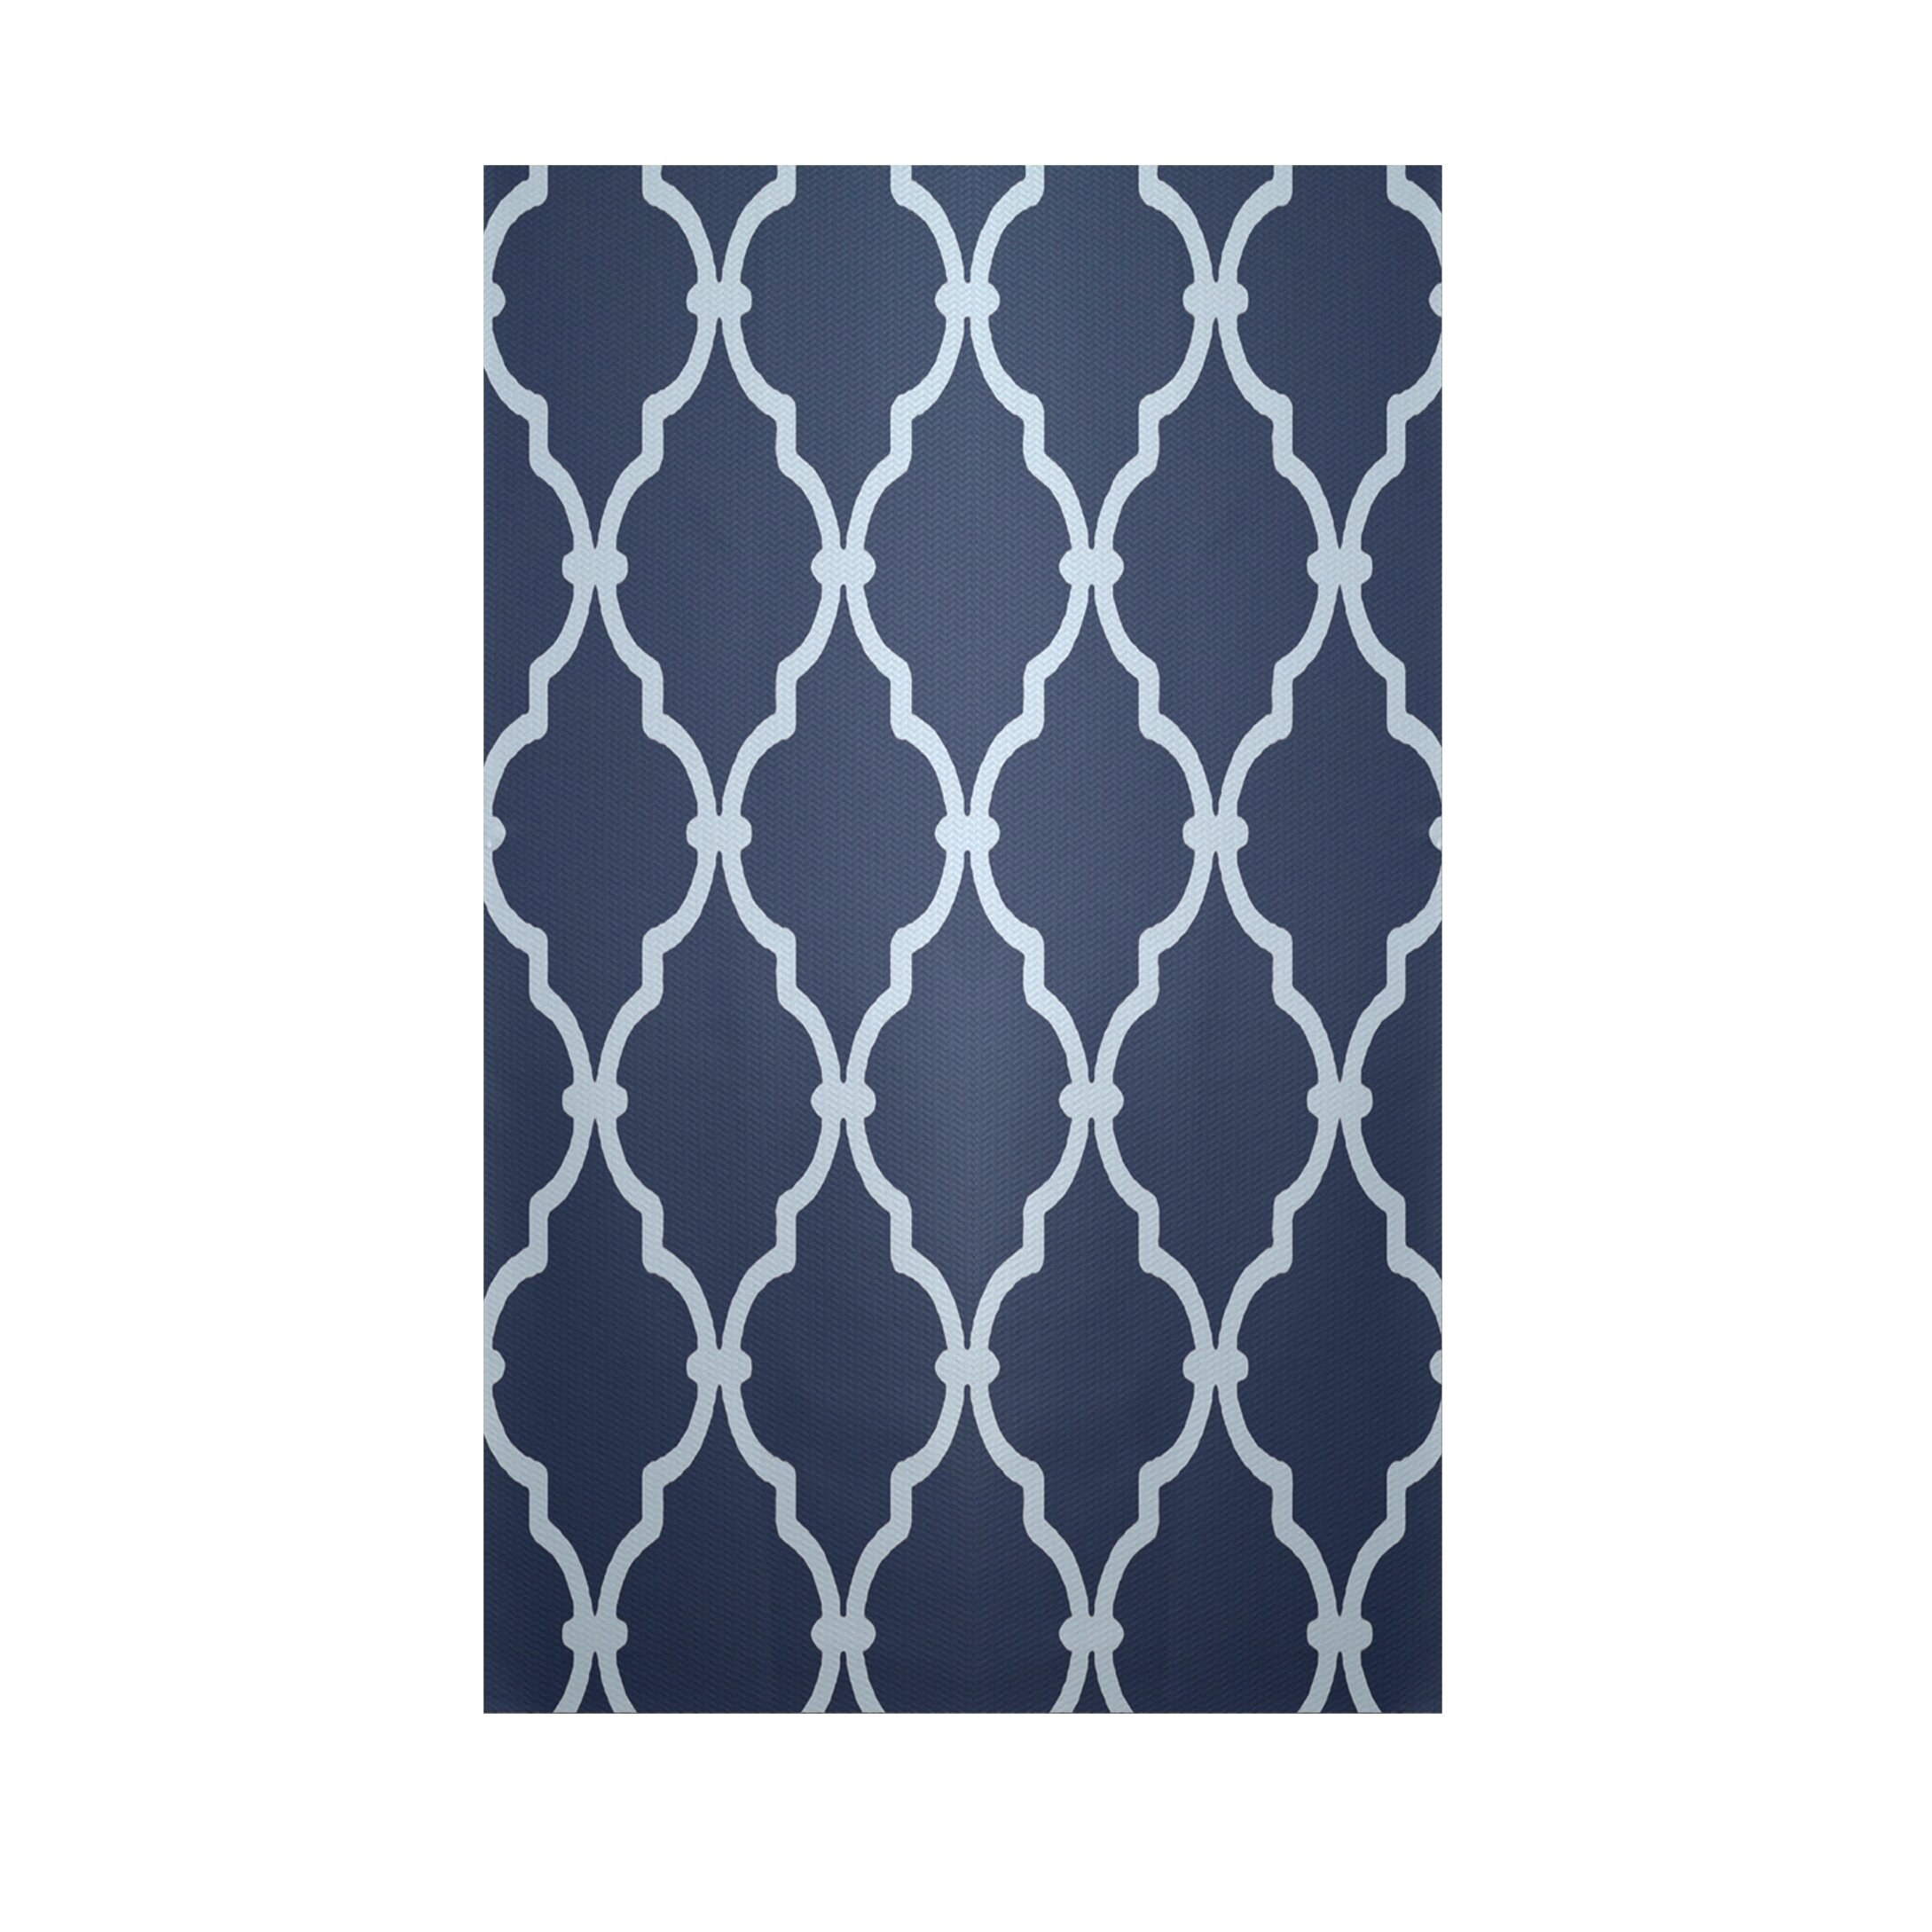 Geometric Navy Blue Indoor Outdoor Area Rug